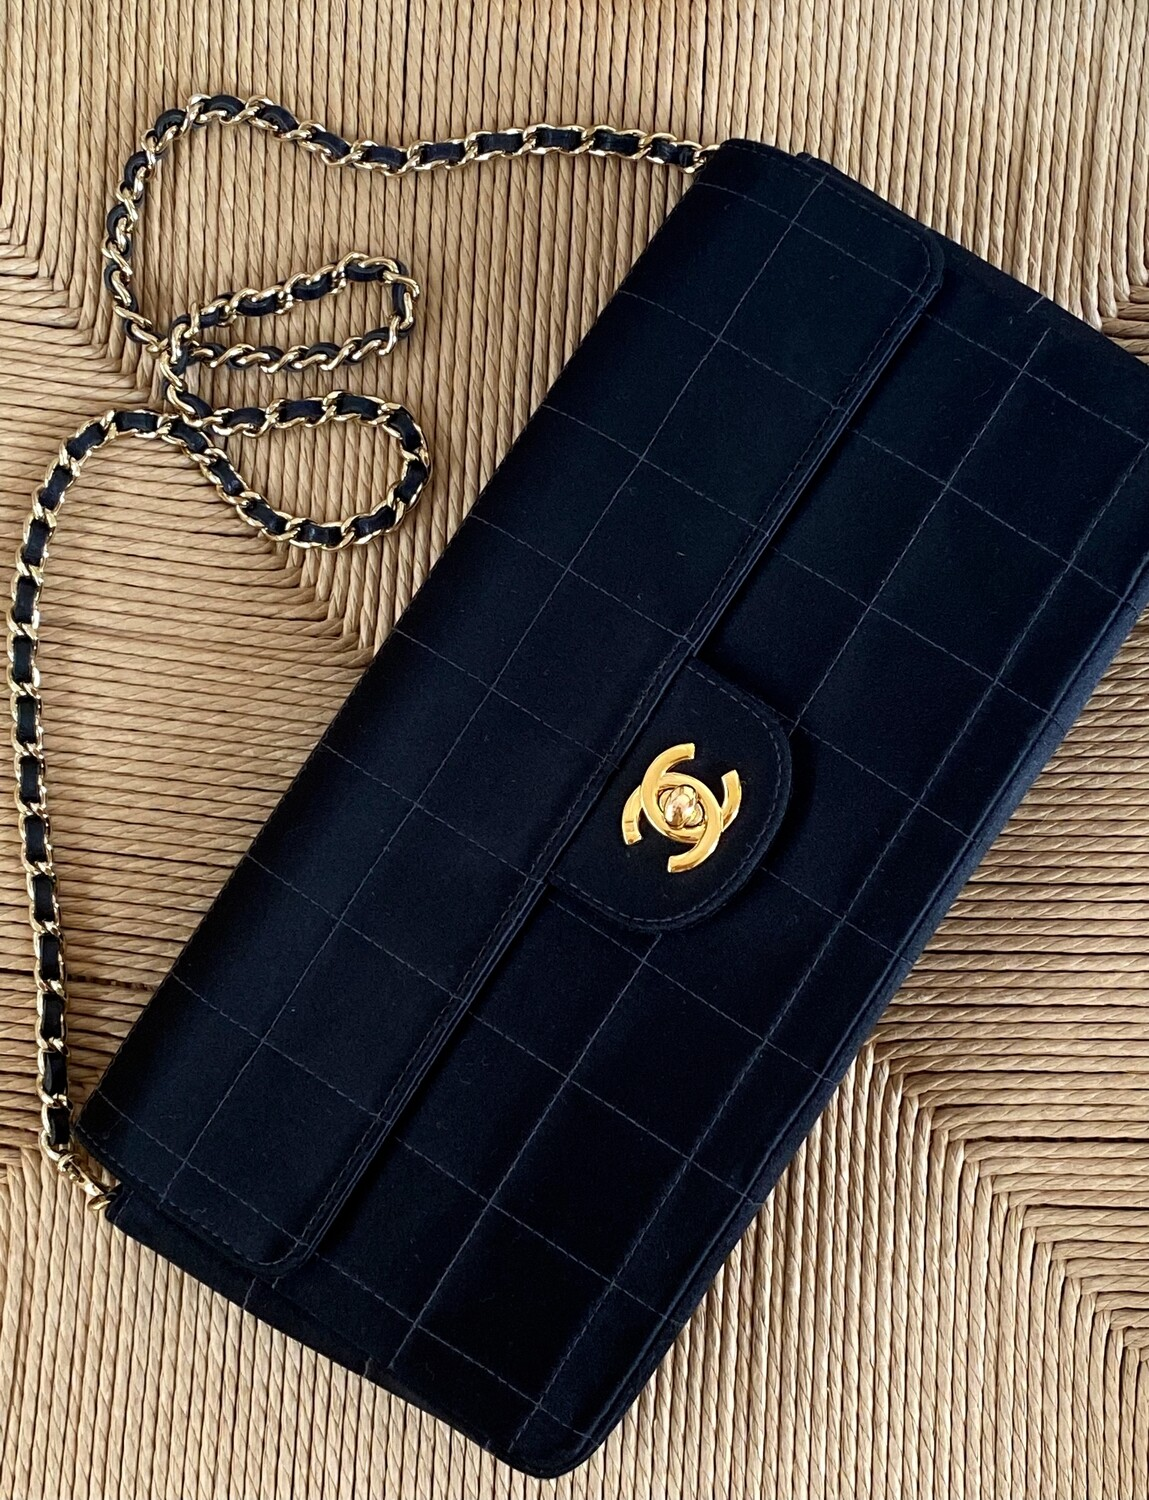 CHANEL QUILTED BLACK SATIN CC TURNLOCK CLASSIC FLAP BAG